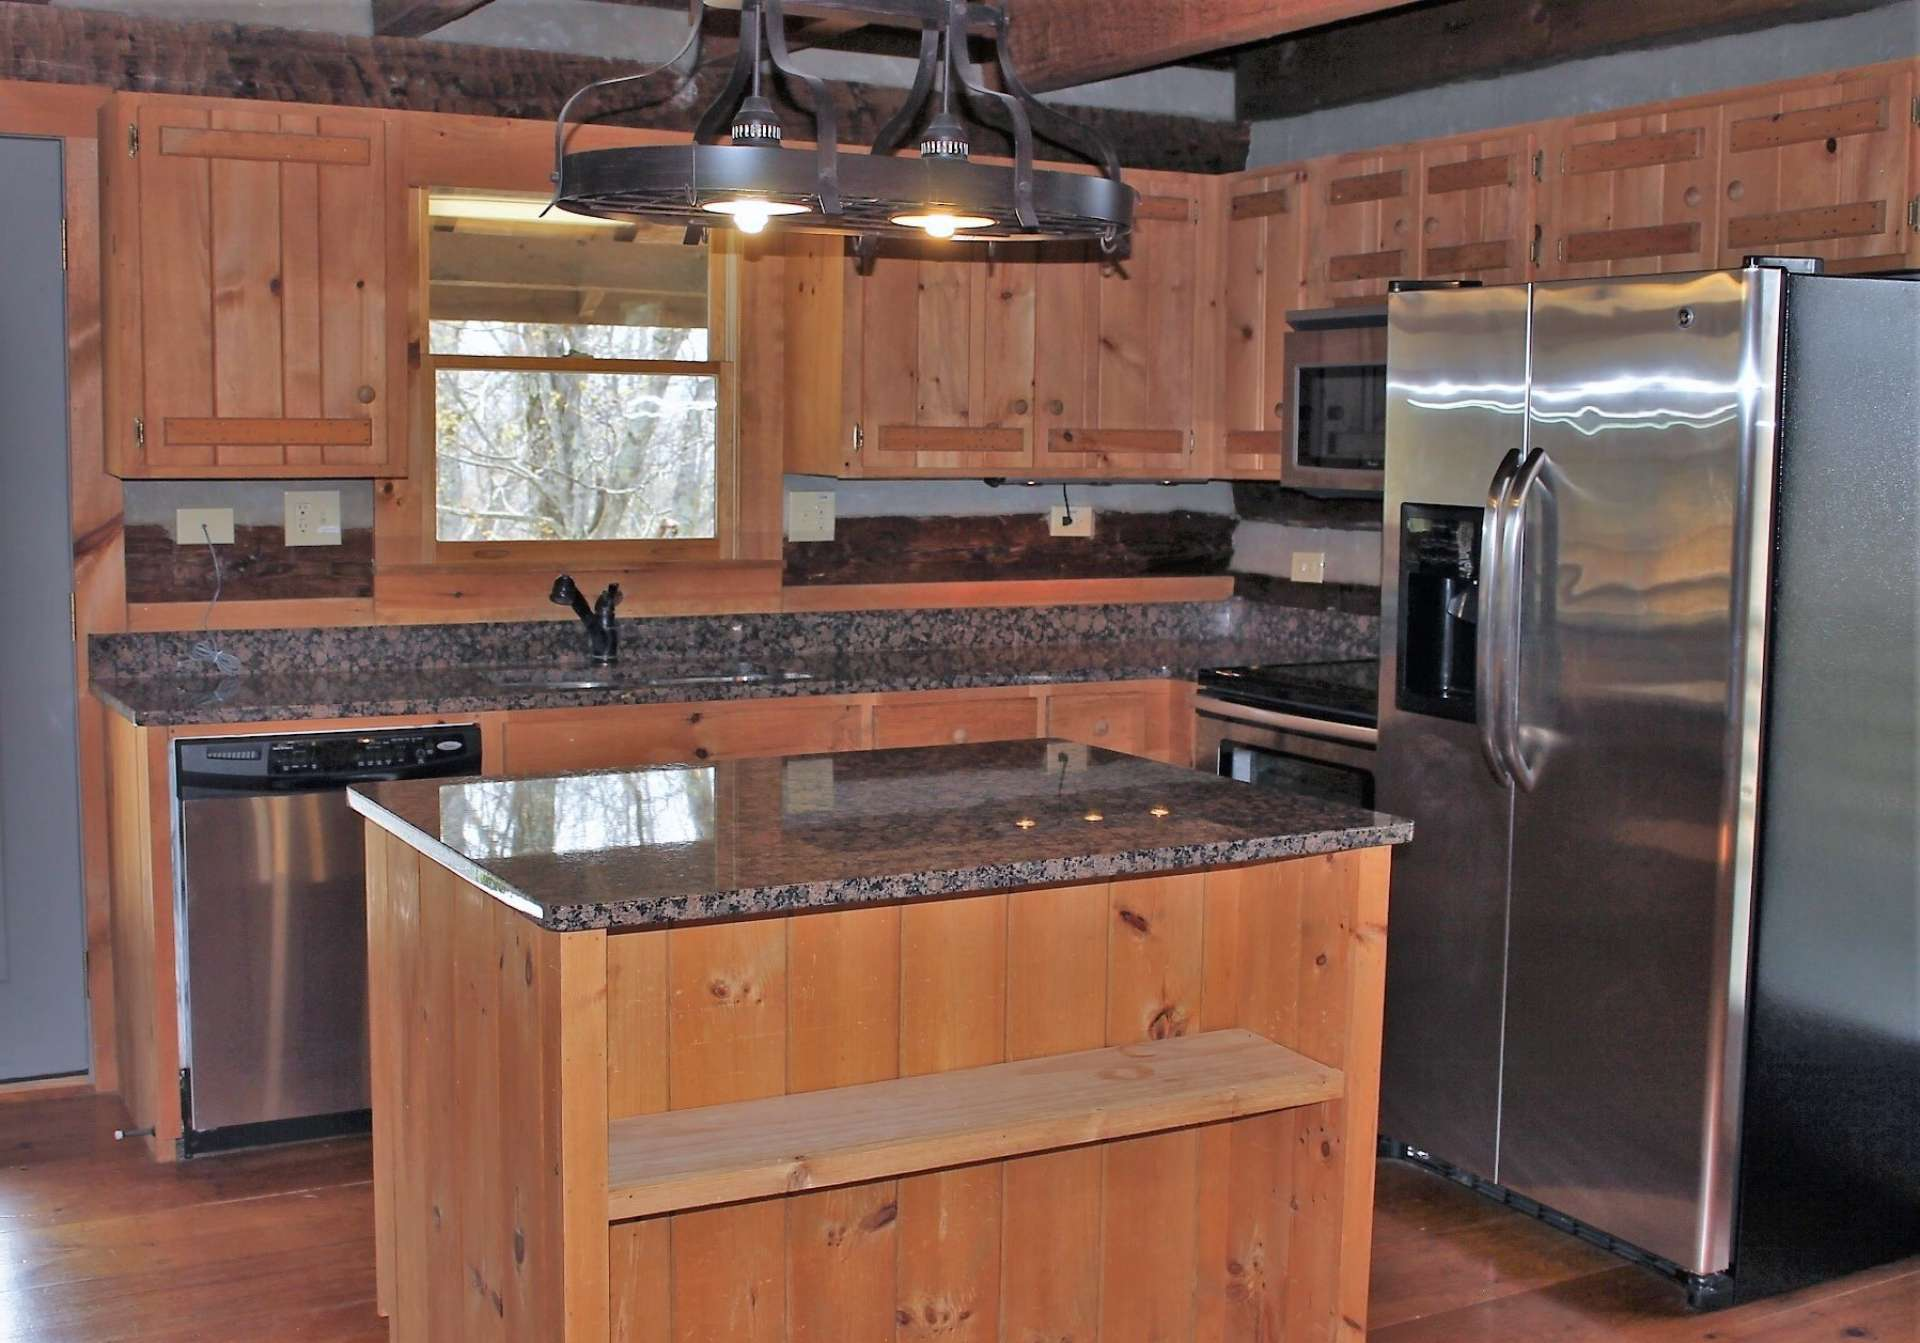 Kitchen is beautifully equipped with stainless appliances, granite counter tops, island and rustic custom cabinets.